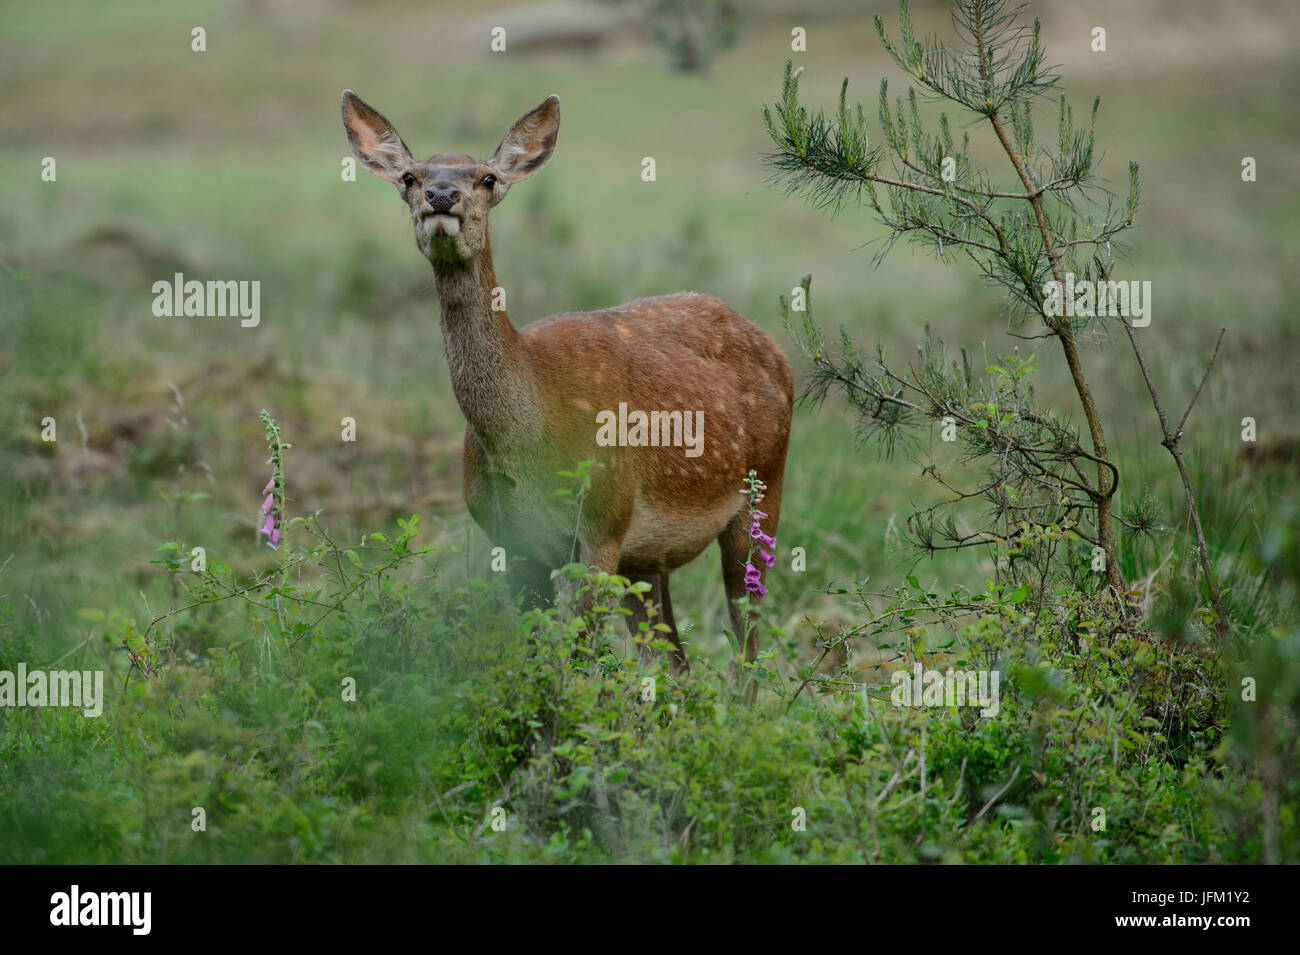 Red deer hind smelling in the air, with foxglove flowers. Hoge Veluwe National Park, Netherlands - Stock Image